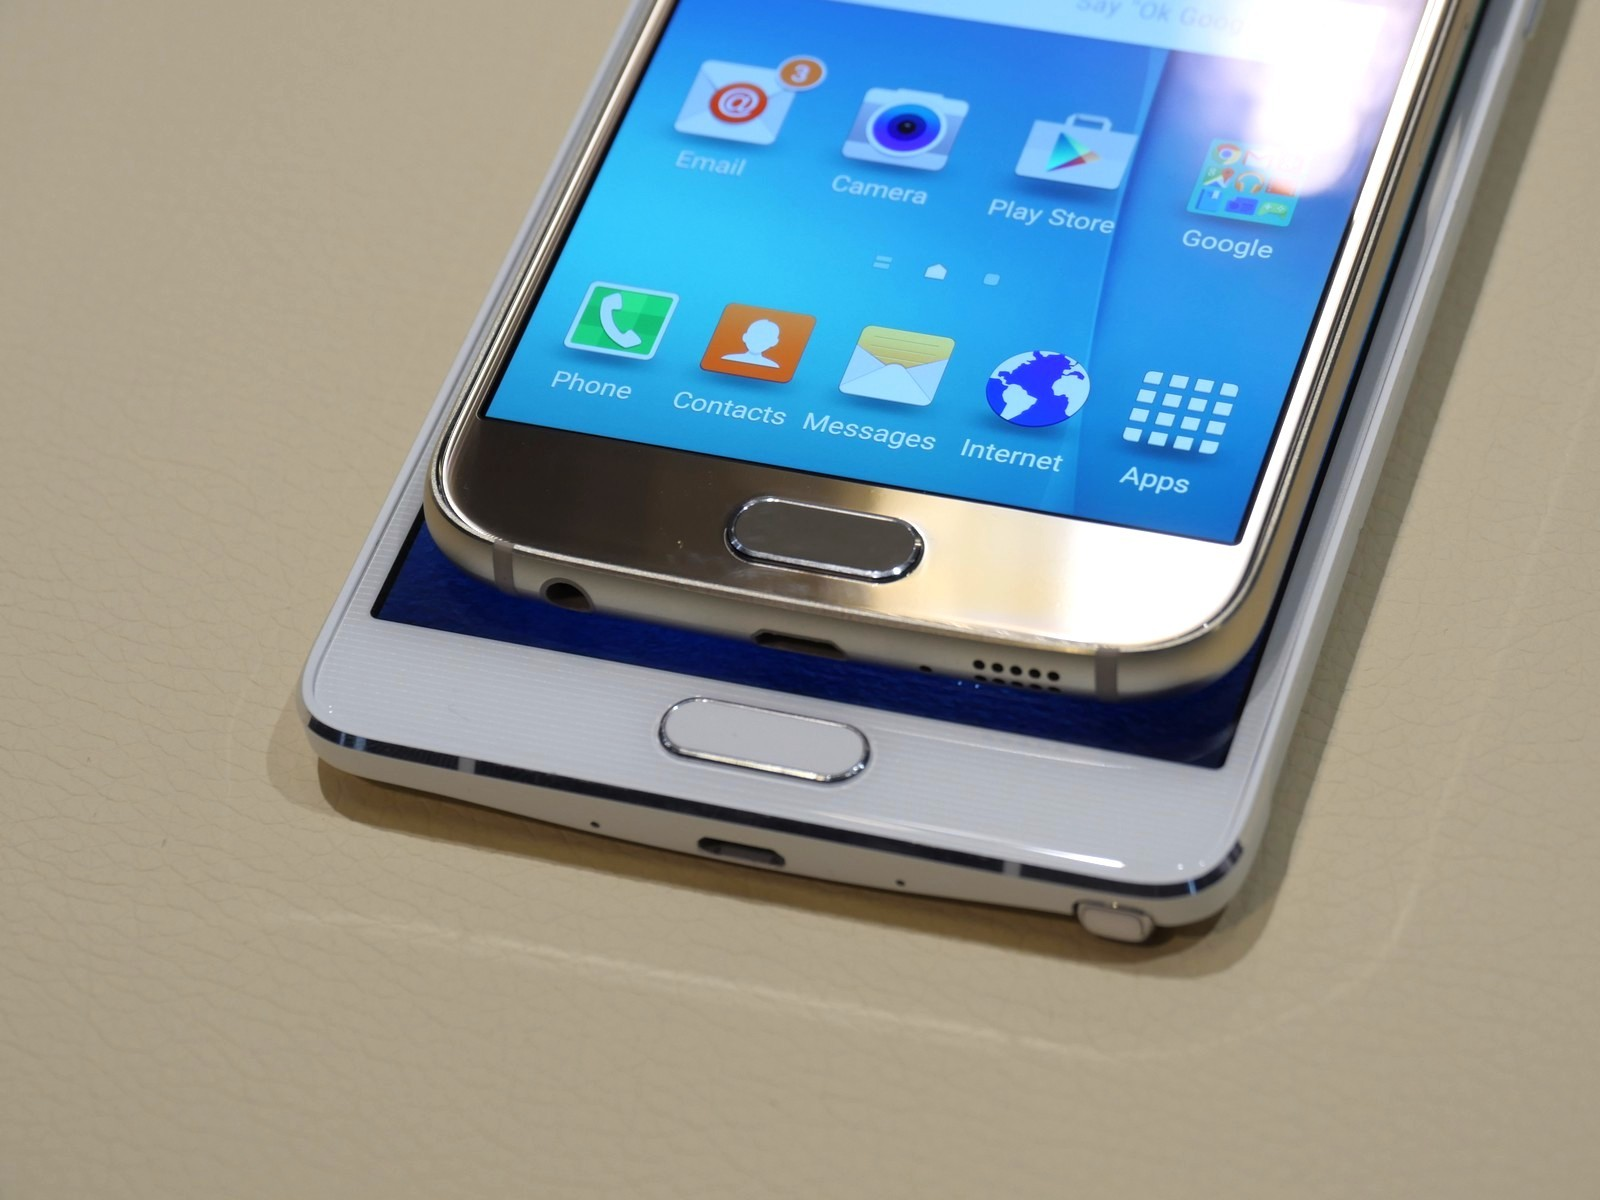 Samsung Note 5 vs Galaxy S6